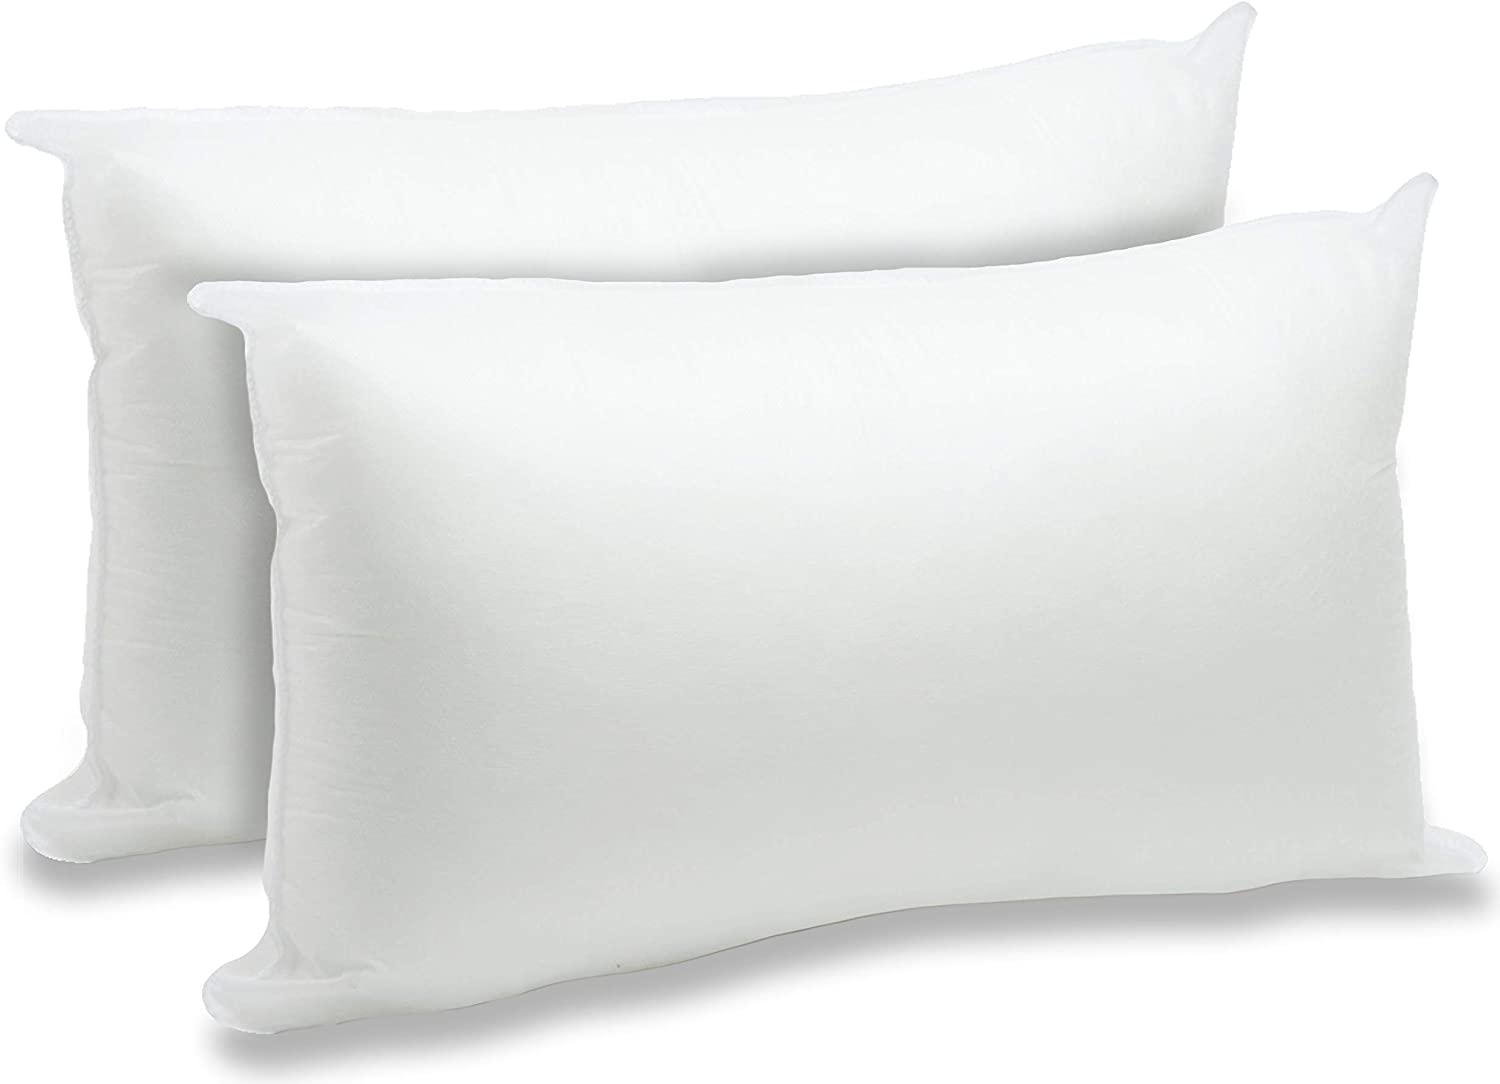 "Foamily 2 Pack - 12"" x 20"" Premium Hypoallergenic Lumbar Stuffers Pillow Inserts Sham Square Form Polyester, Standard/White: Home & Kitchen"